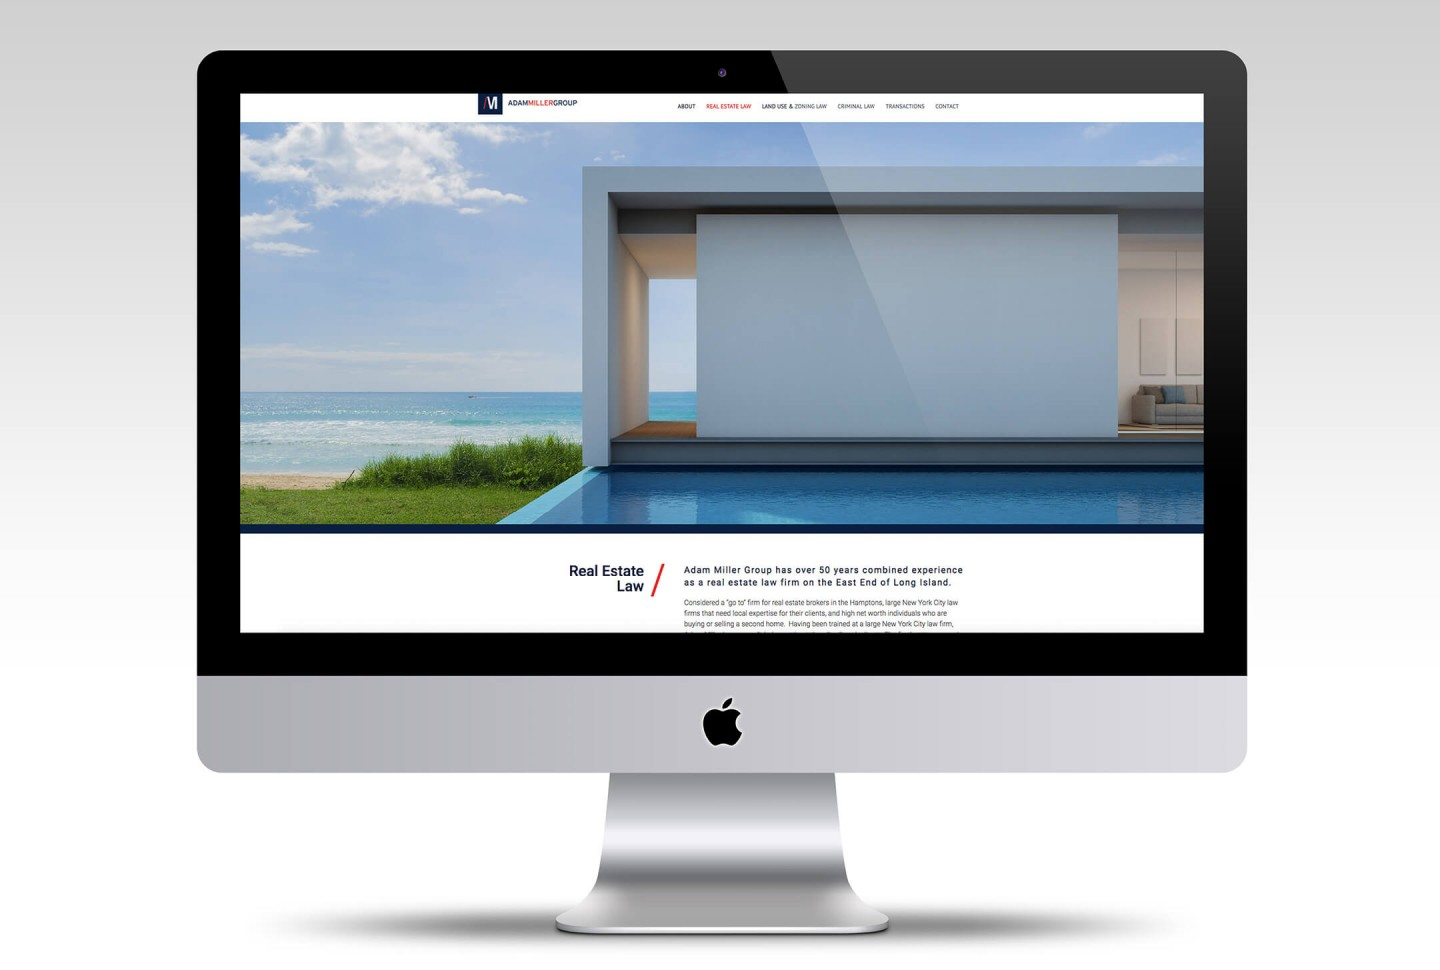 Adam Miller Group website design for desktop